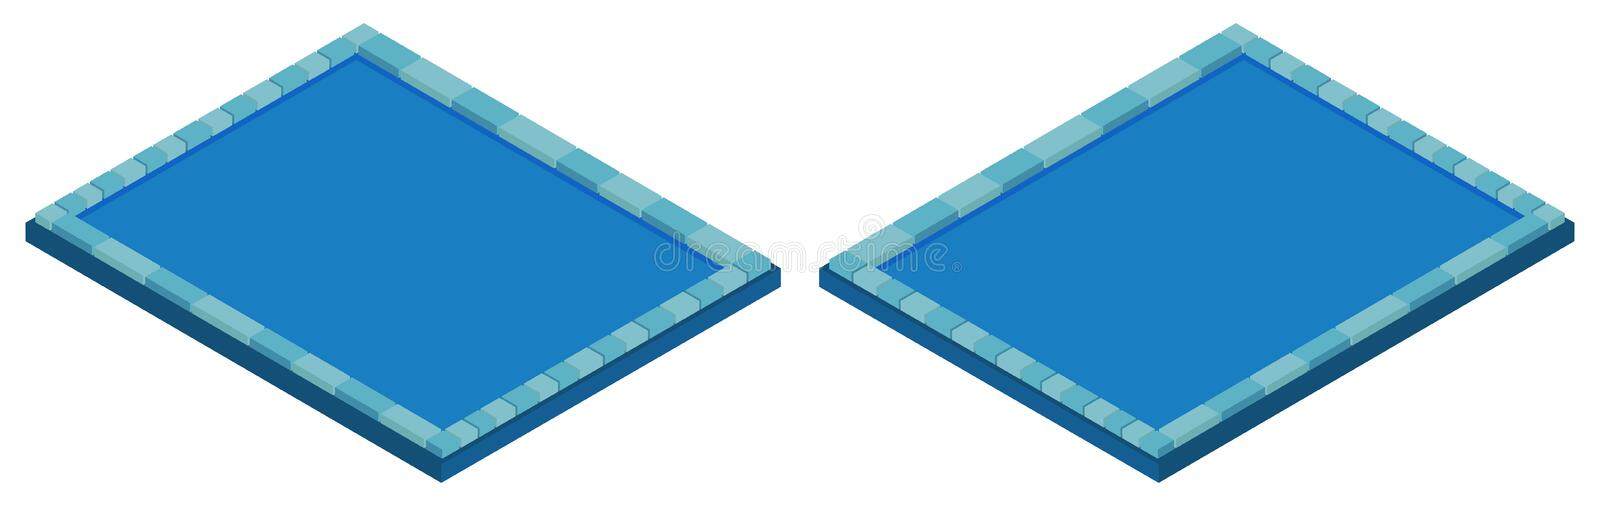 Swimming pool in two angles. Illustration stock illustration